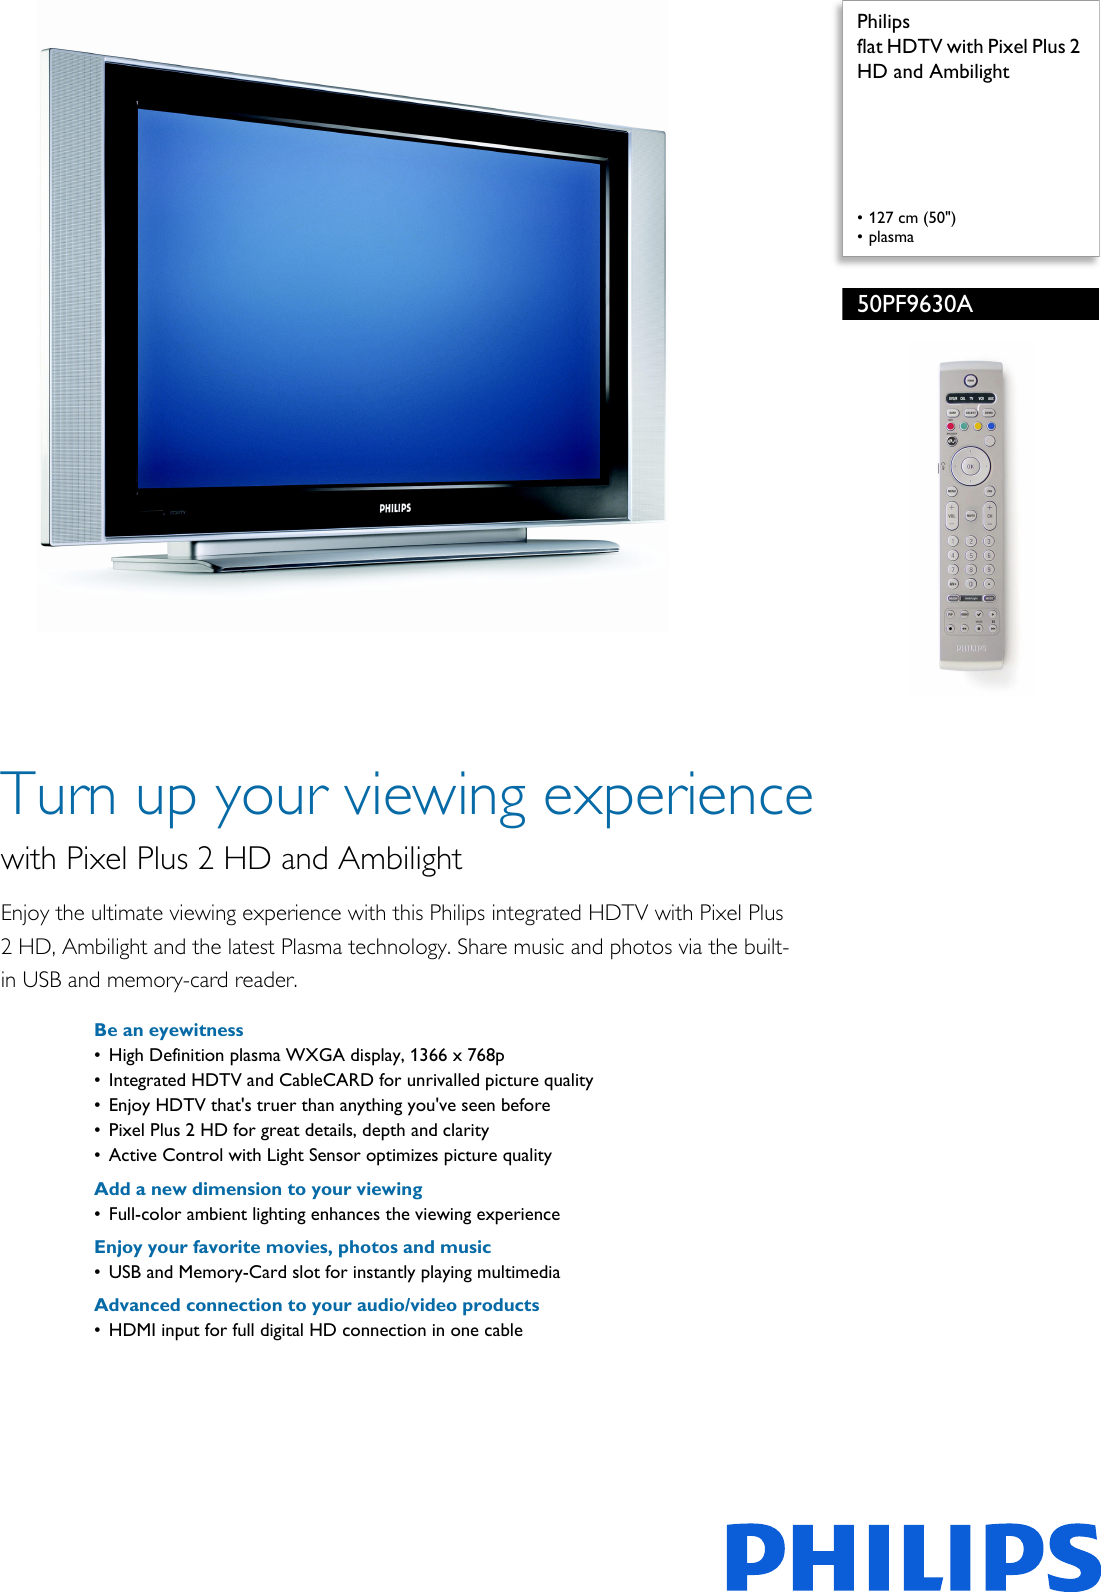 philips 50pf9630a 37 flat hdtv with pixel plus 2 hd and ambilight rh usermanual wiki